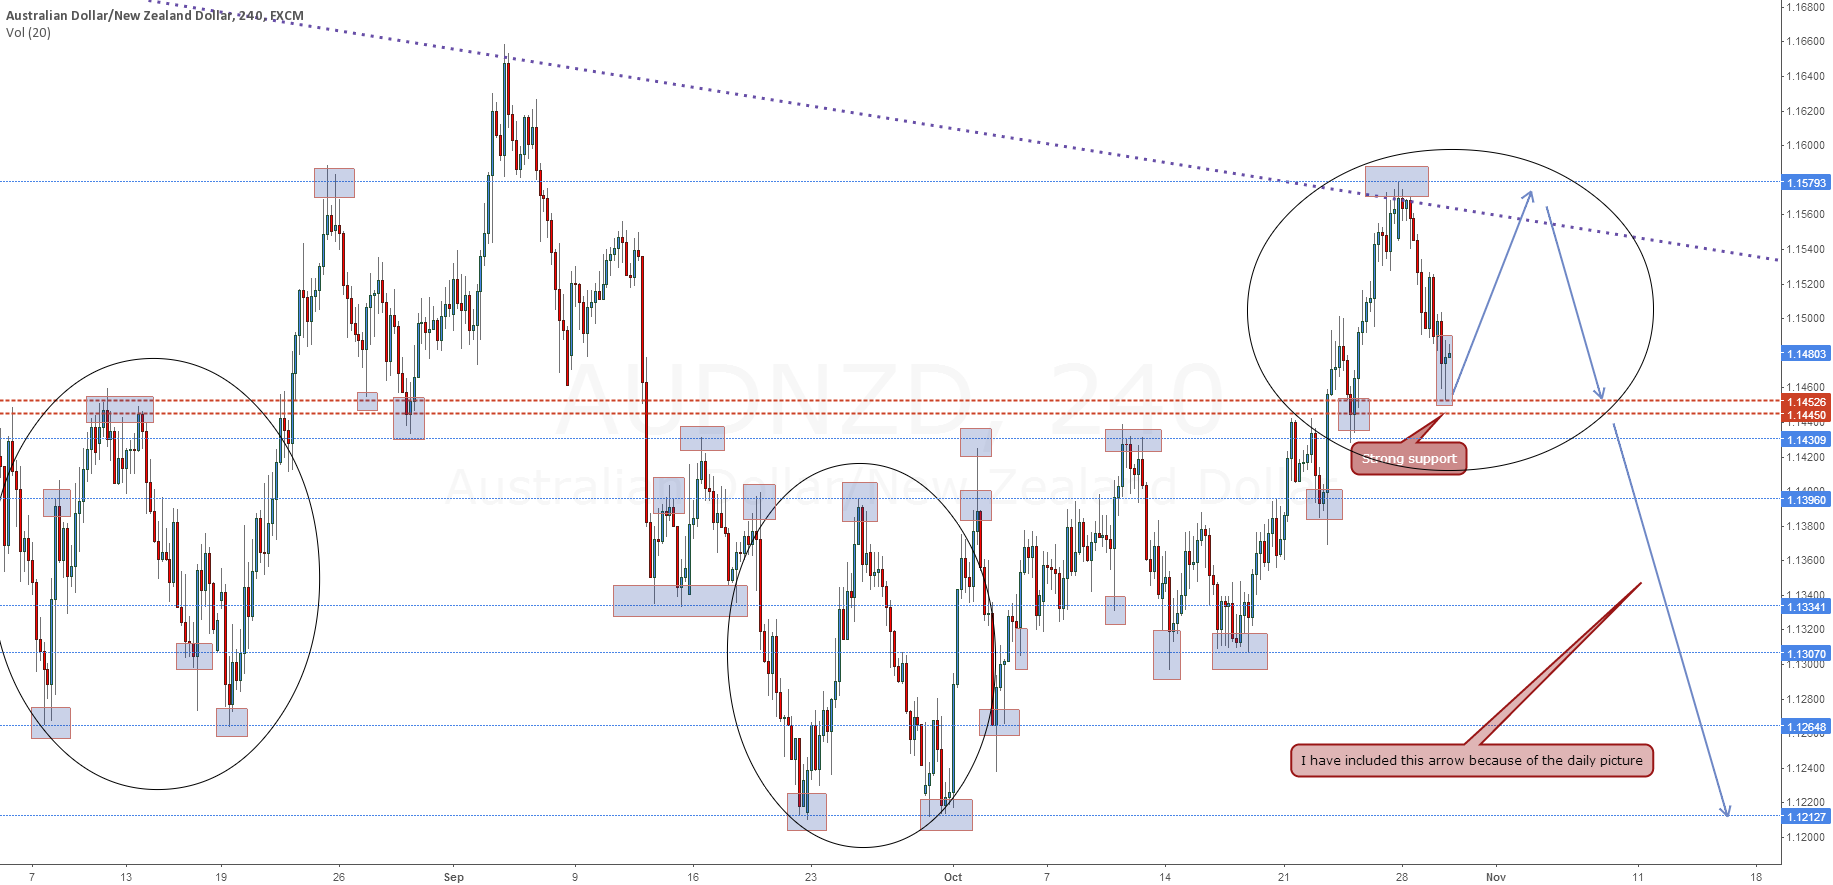 AUD.NZD - Repeated price action